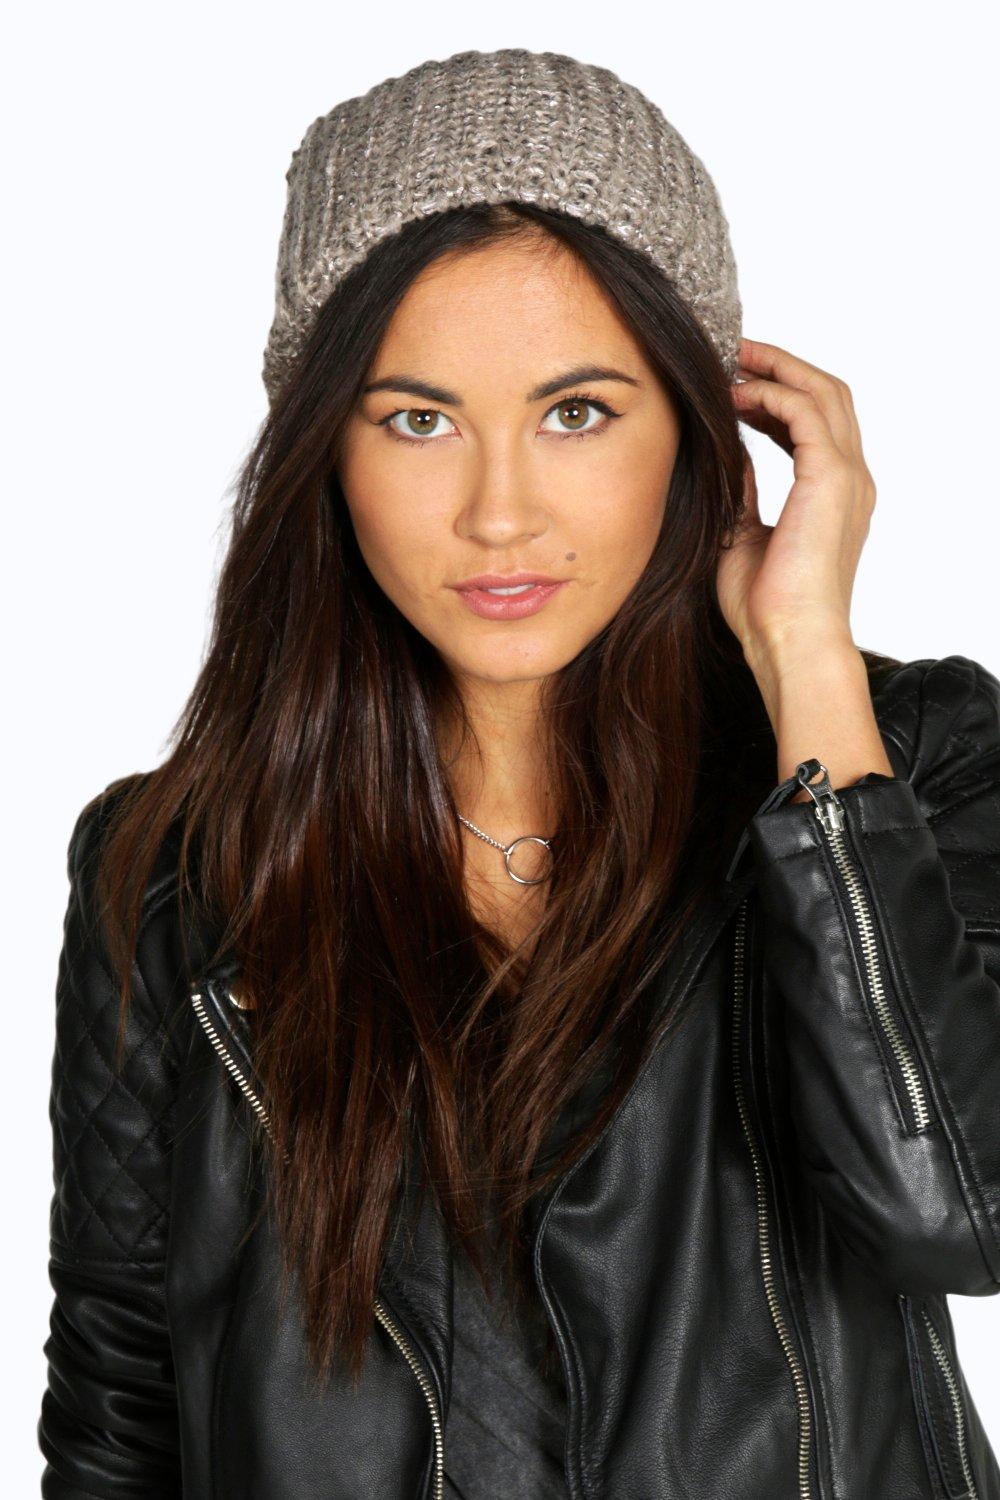 Ava Sequinned Slouch Beanie Hat